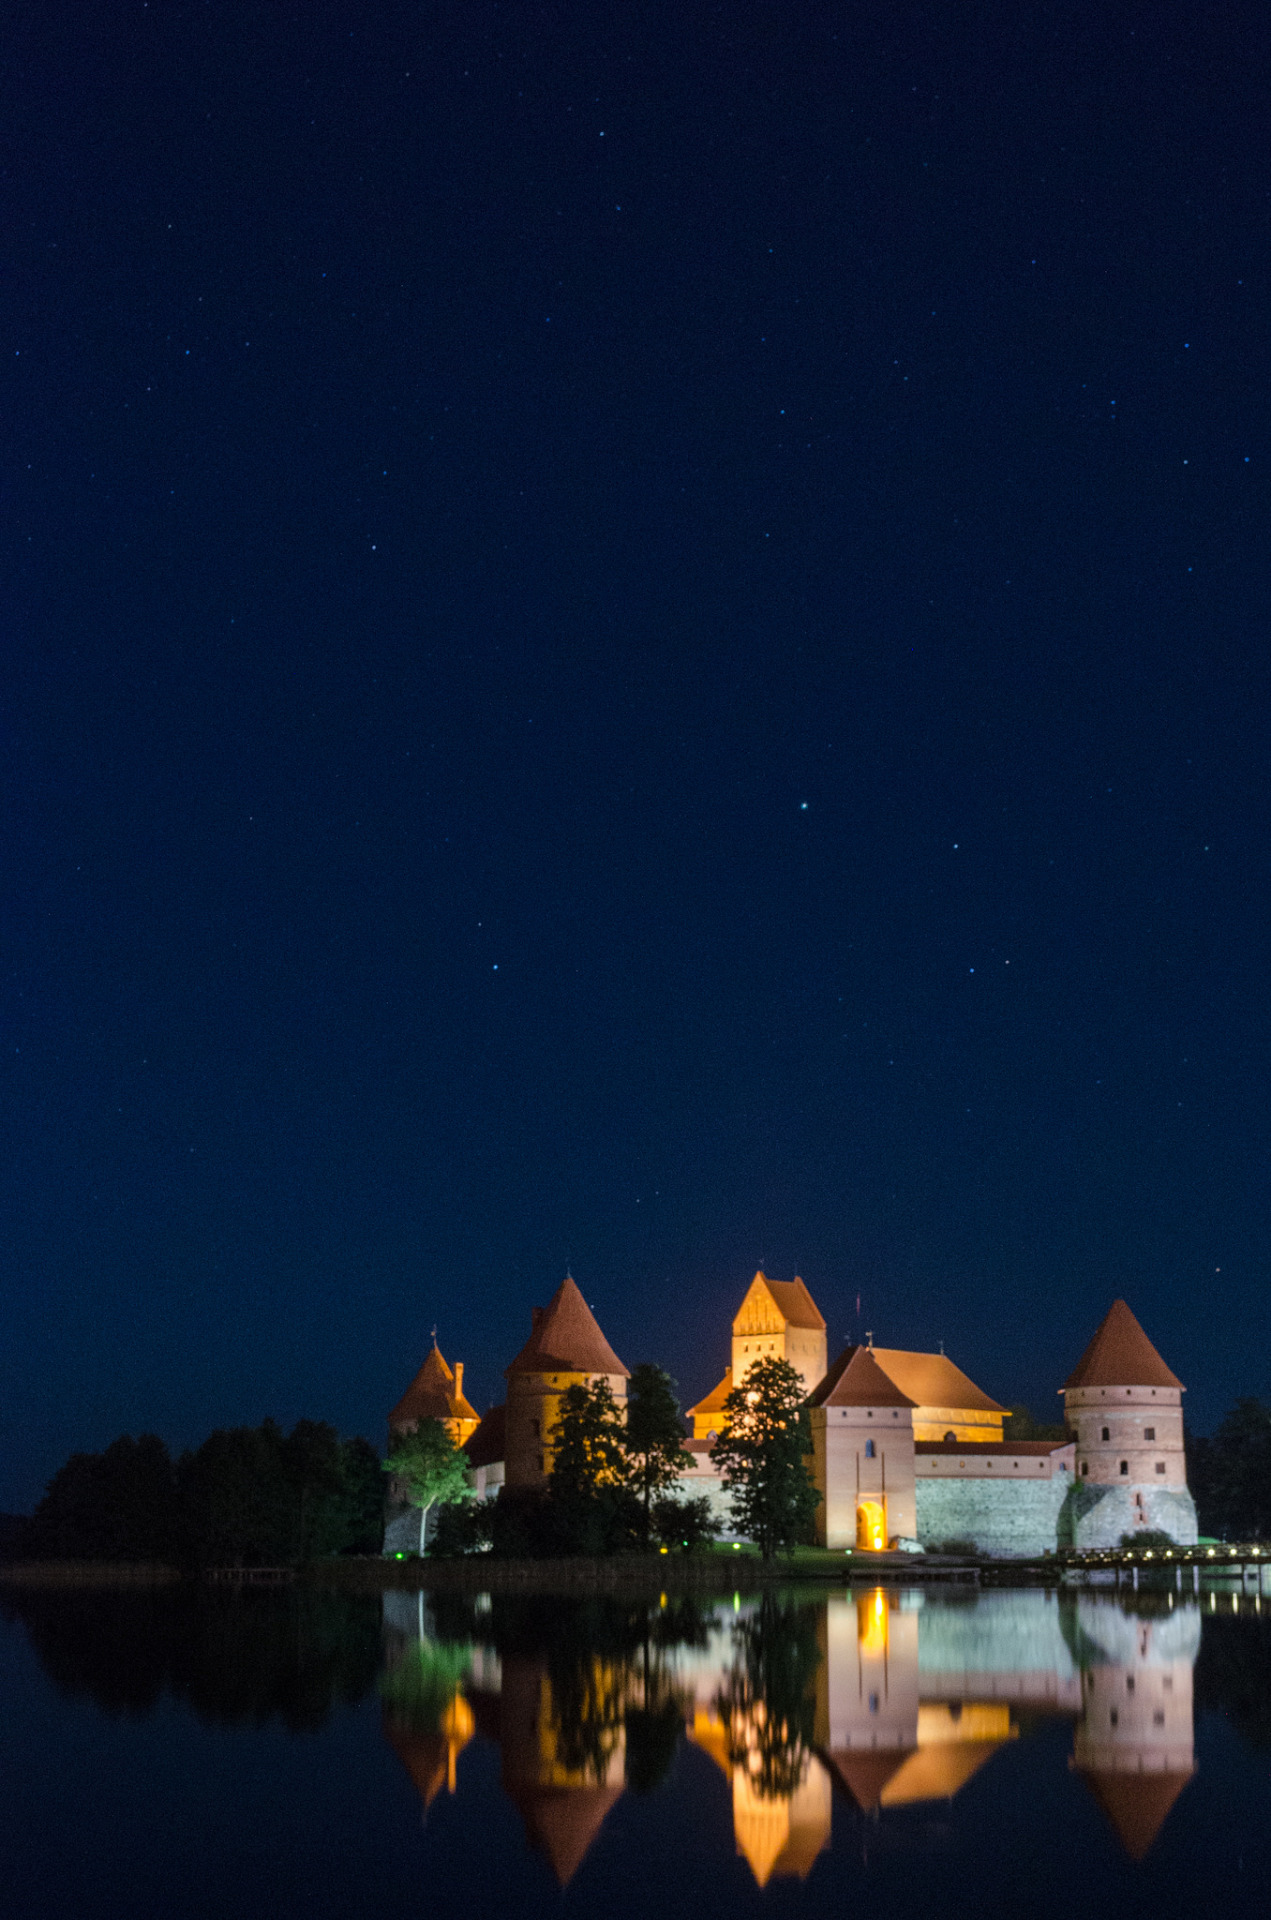 """ Night reflections at Trakai Island Castle / Lithuania ."""